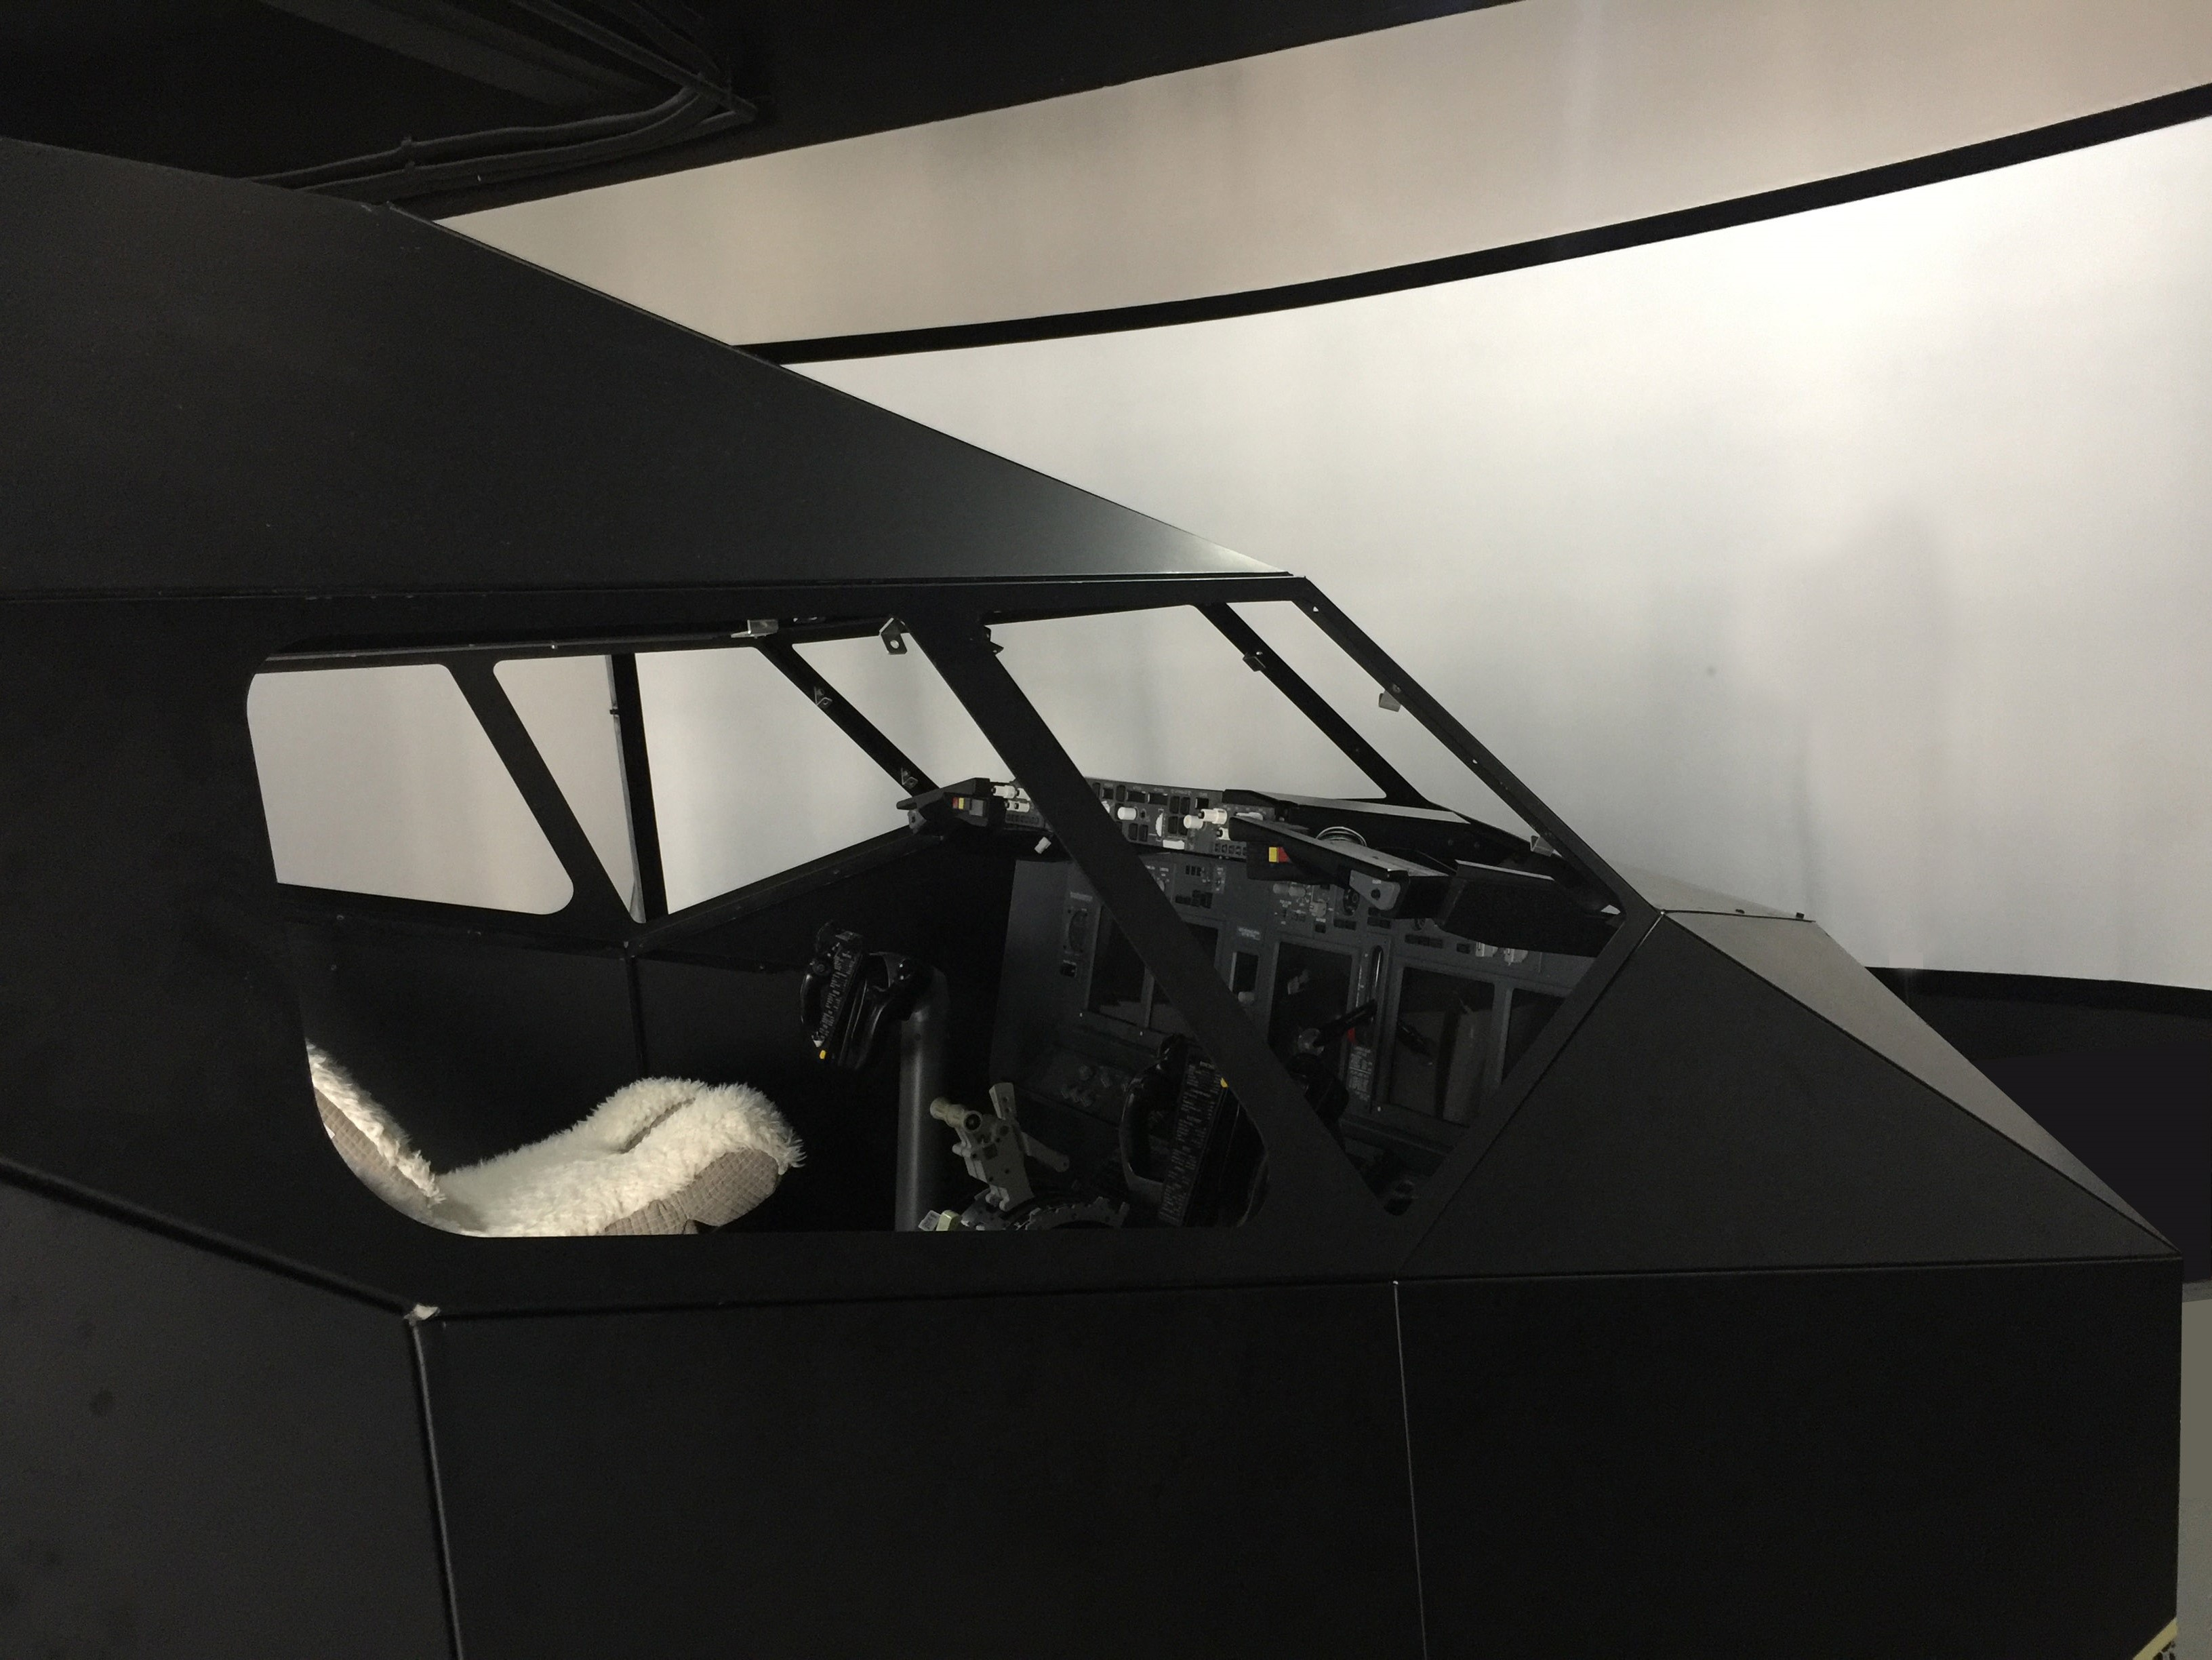 New B737 flight simulator will be ready in our Experience Center!